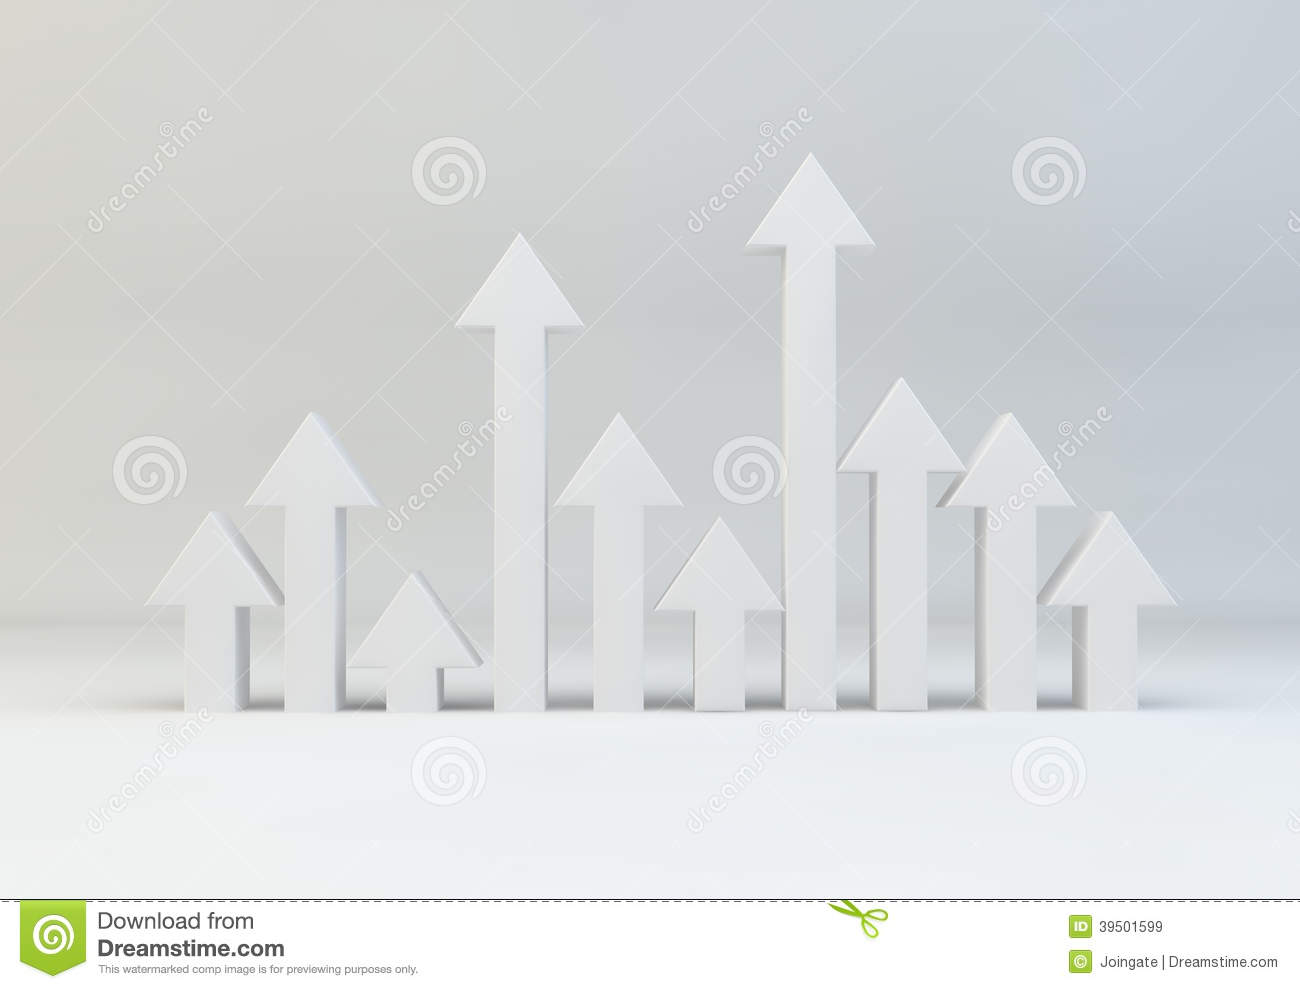 Selection of arrows pointing upwards for growth